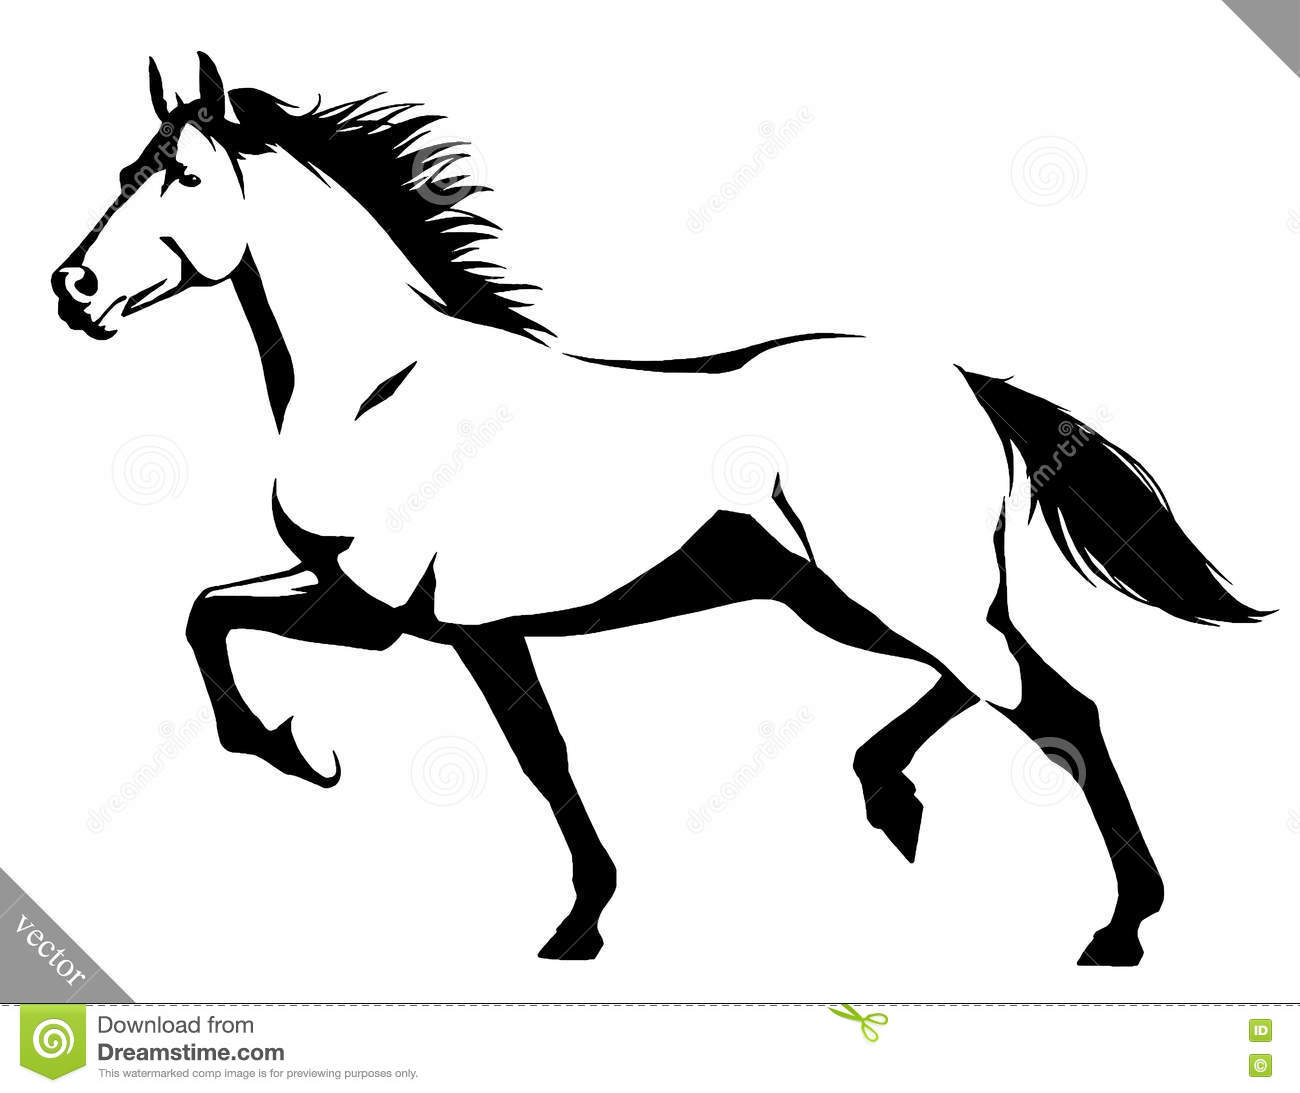 Black And White Linear Paint Draw Horse Vector Illustration Stock Vector Illustration Of Contour Racing 81666475